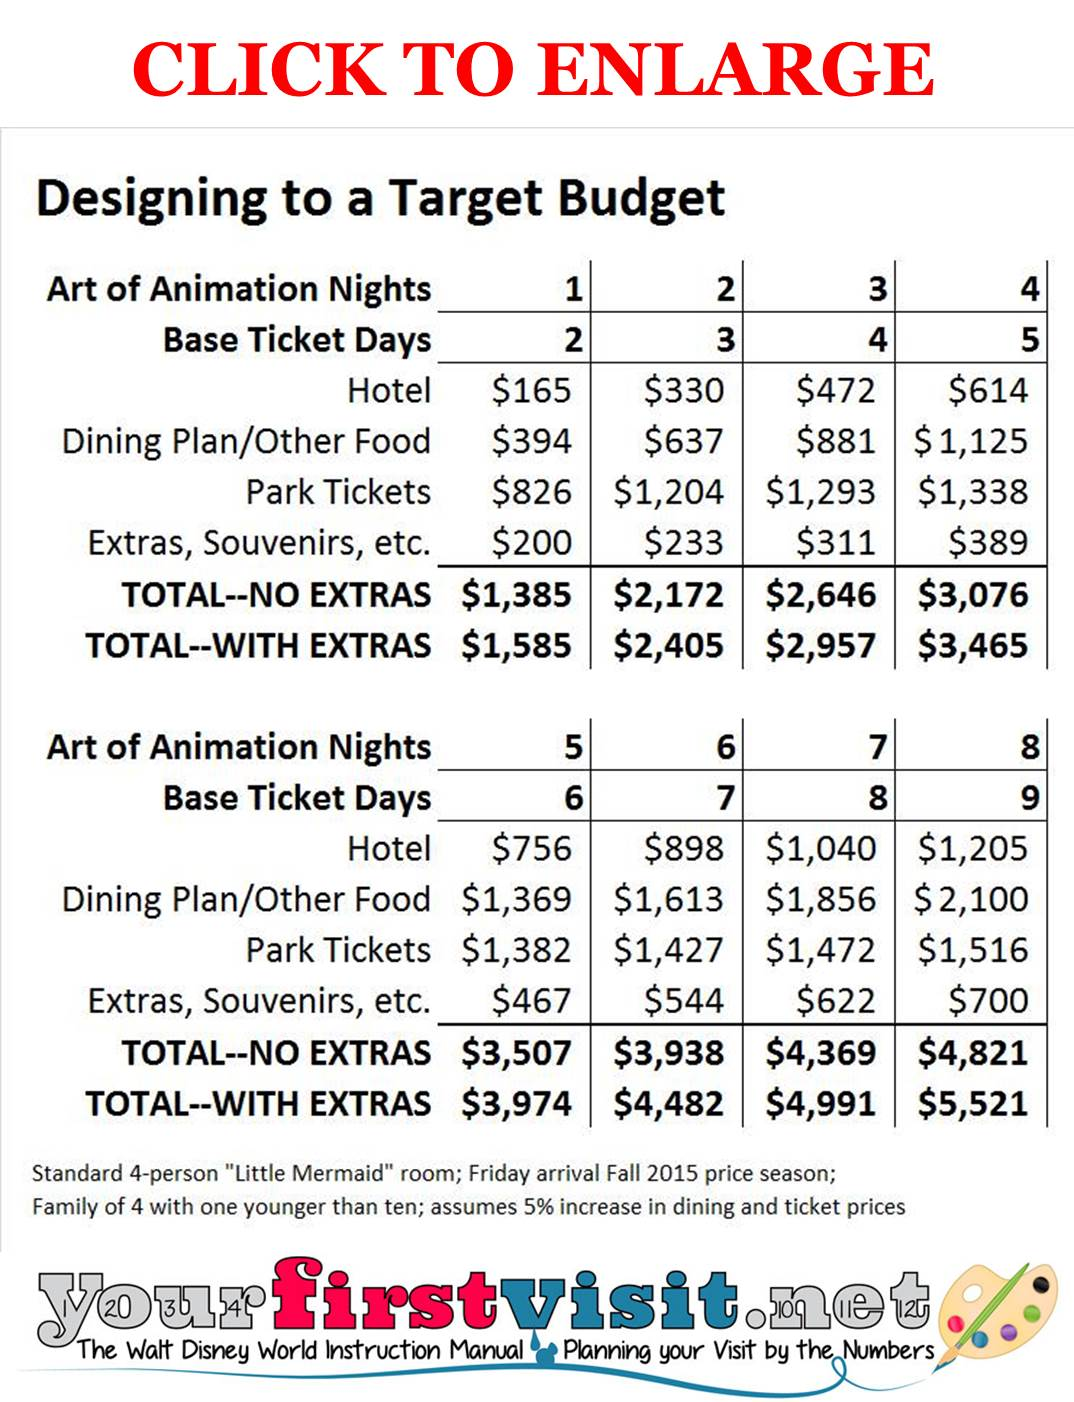 Designing a Disney World Visit to a Target Budget from yourfirstvisit.net